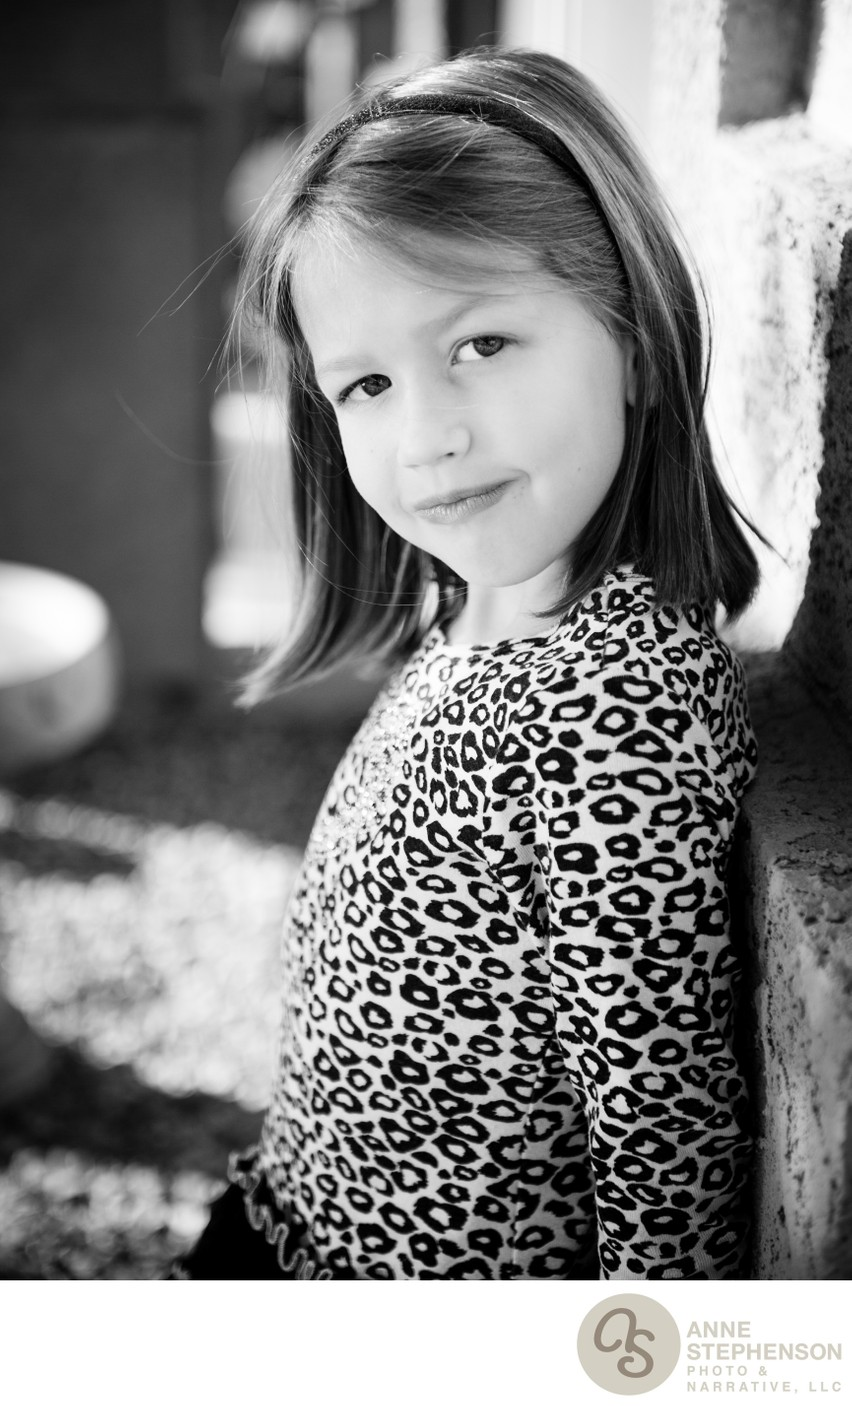 Teenage Portrait of Young Girl in Leopard Print Top